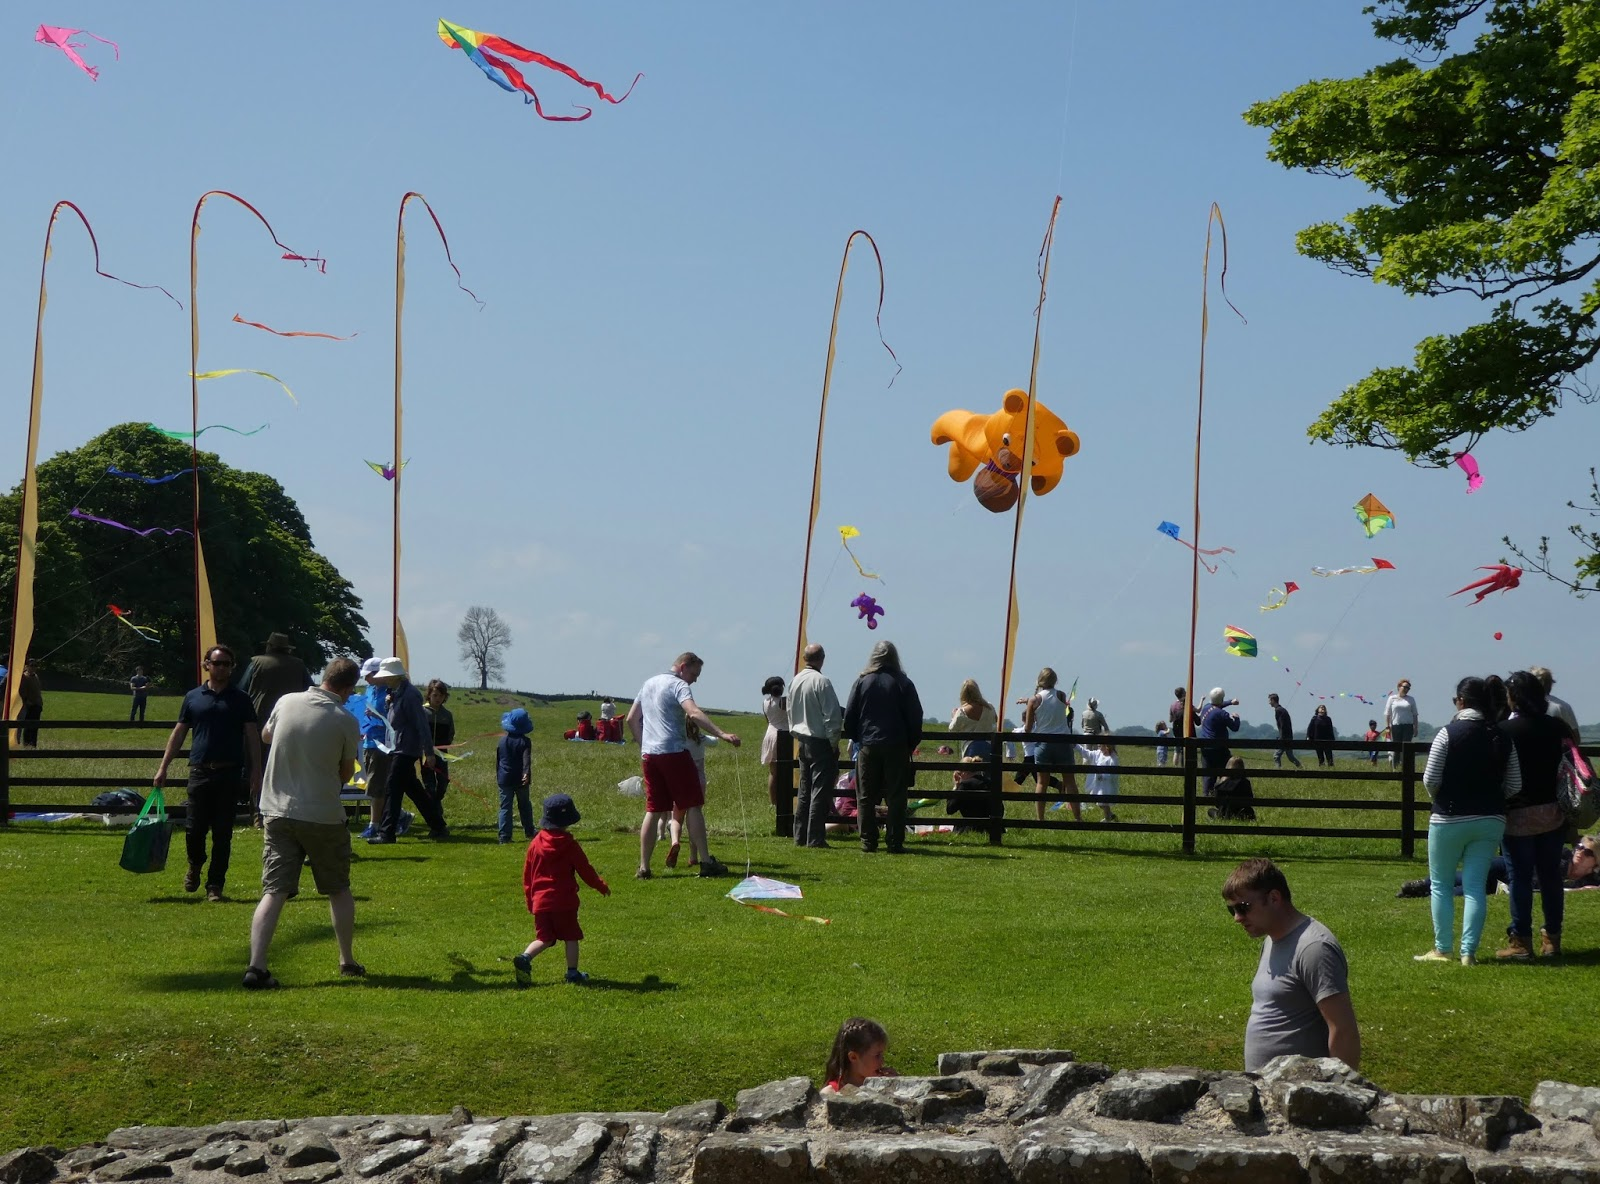 A Guide to The Best Family Days Out in the North East including Hadrian's Wall Kite Festival